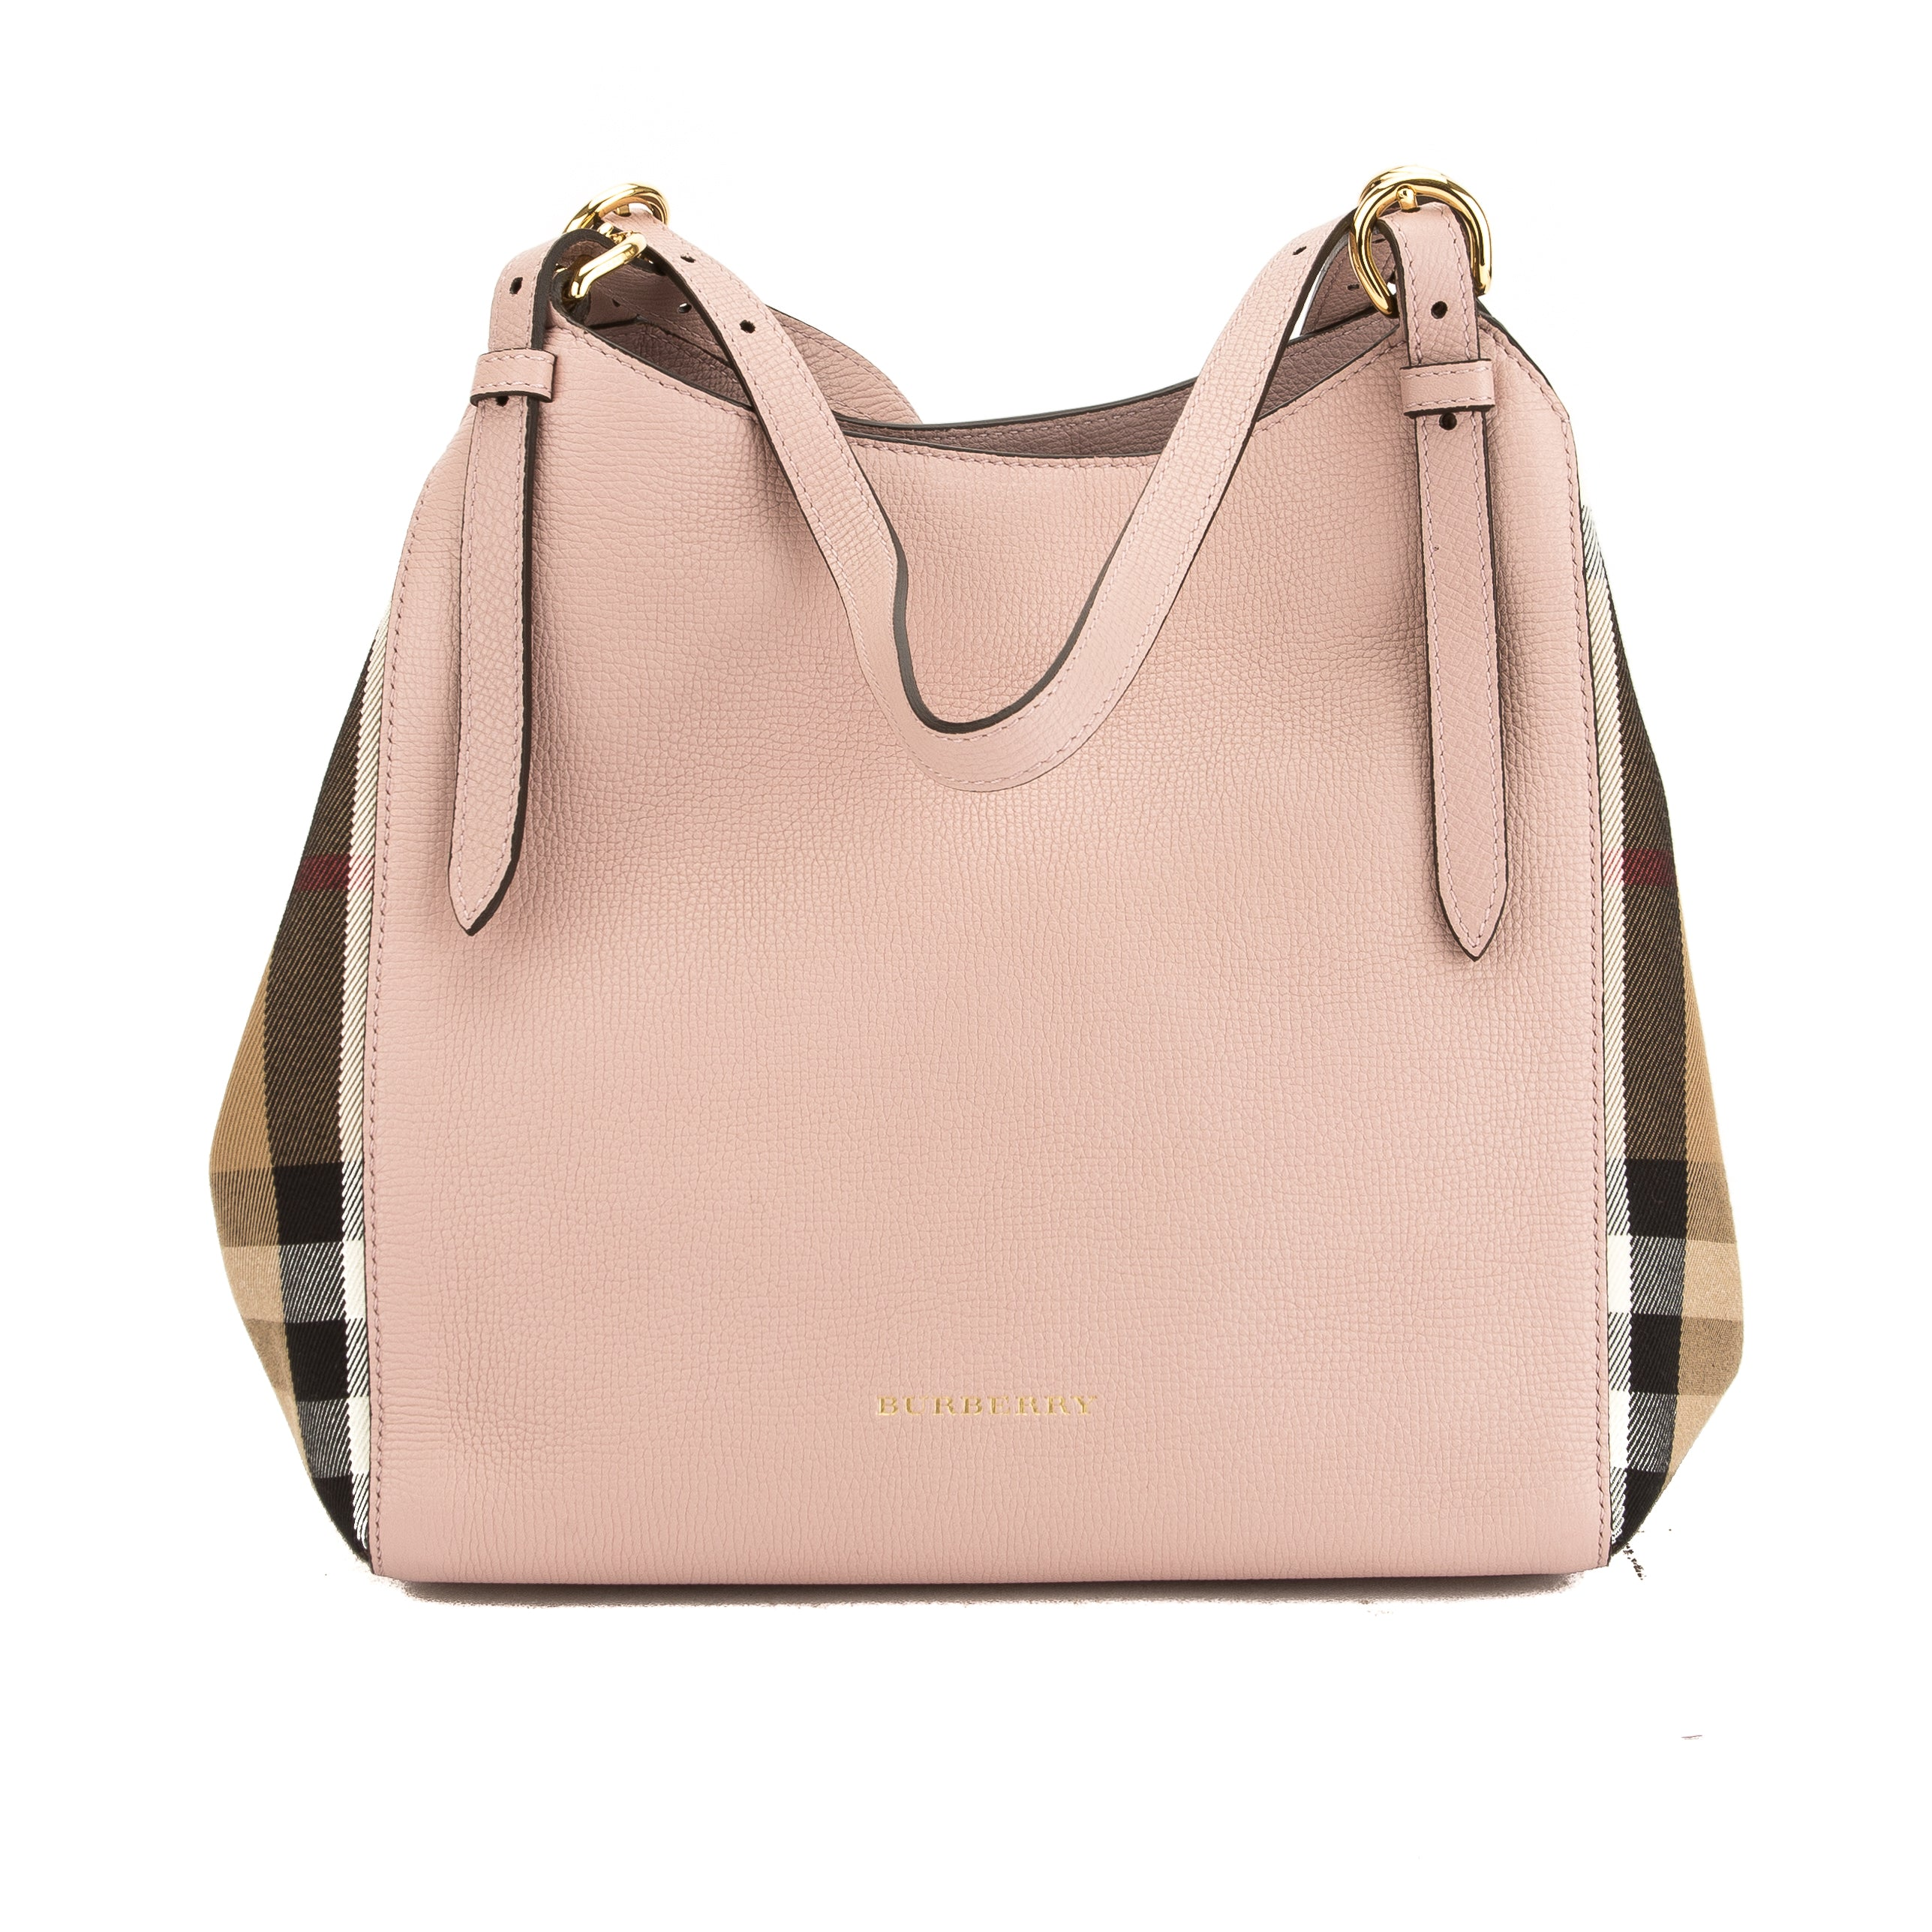 18490b59ffa Burberry Pale Orchid Leather and House Check Small Canter Bag New with Tags